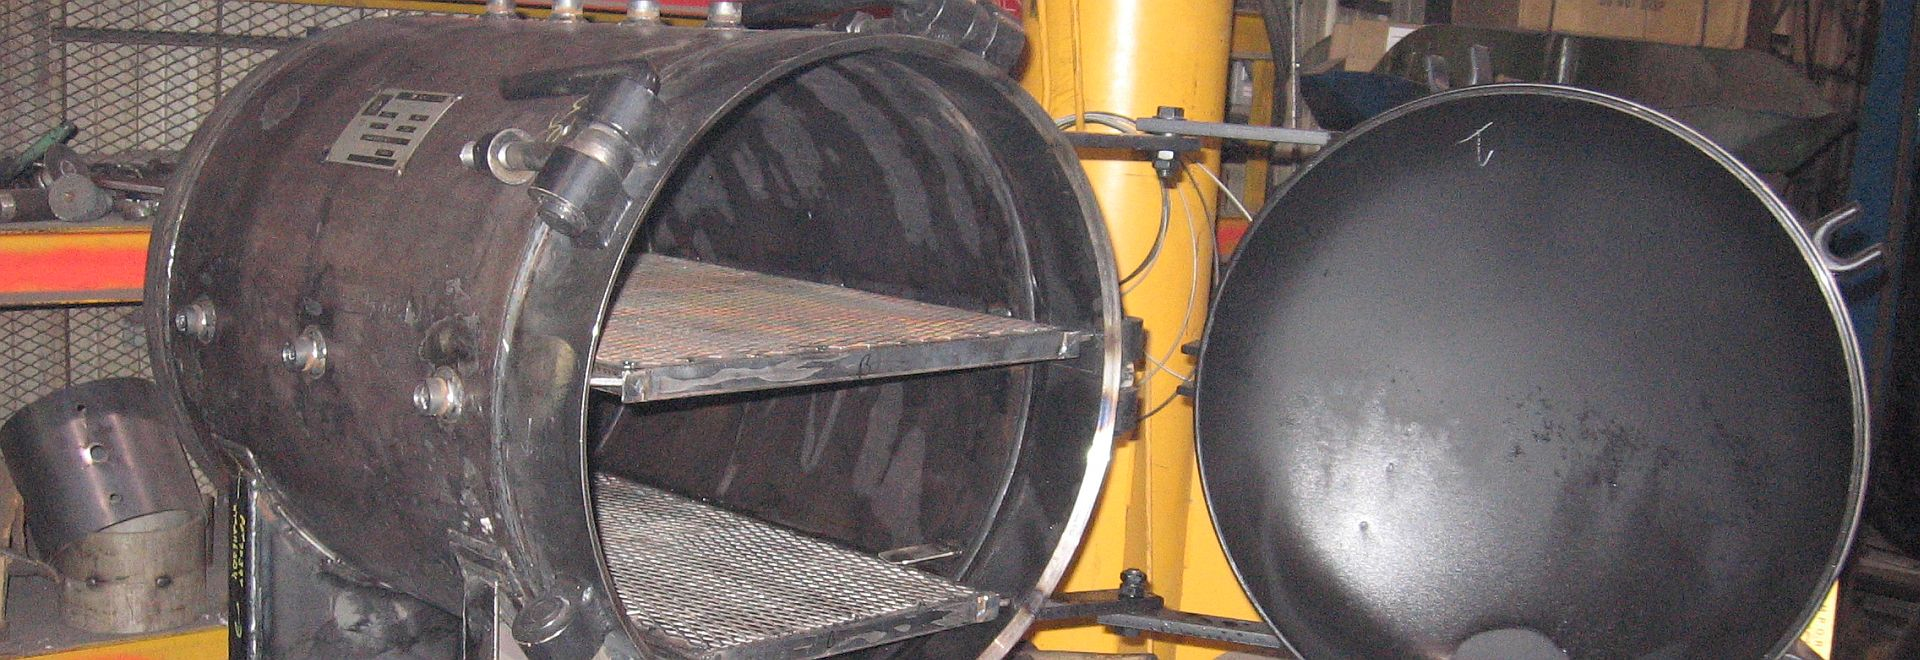 Hays manufactures ASME tanks and pressure vessels